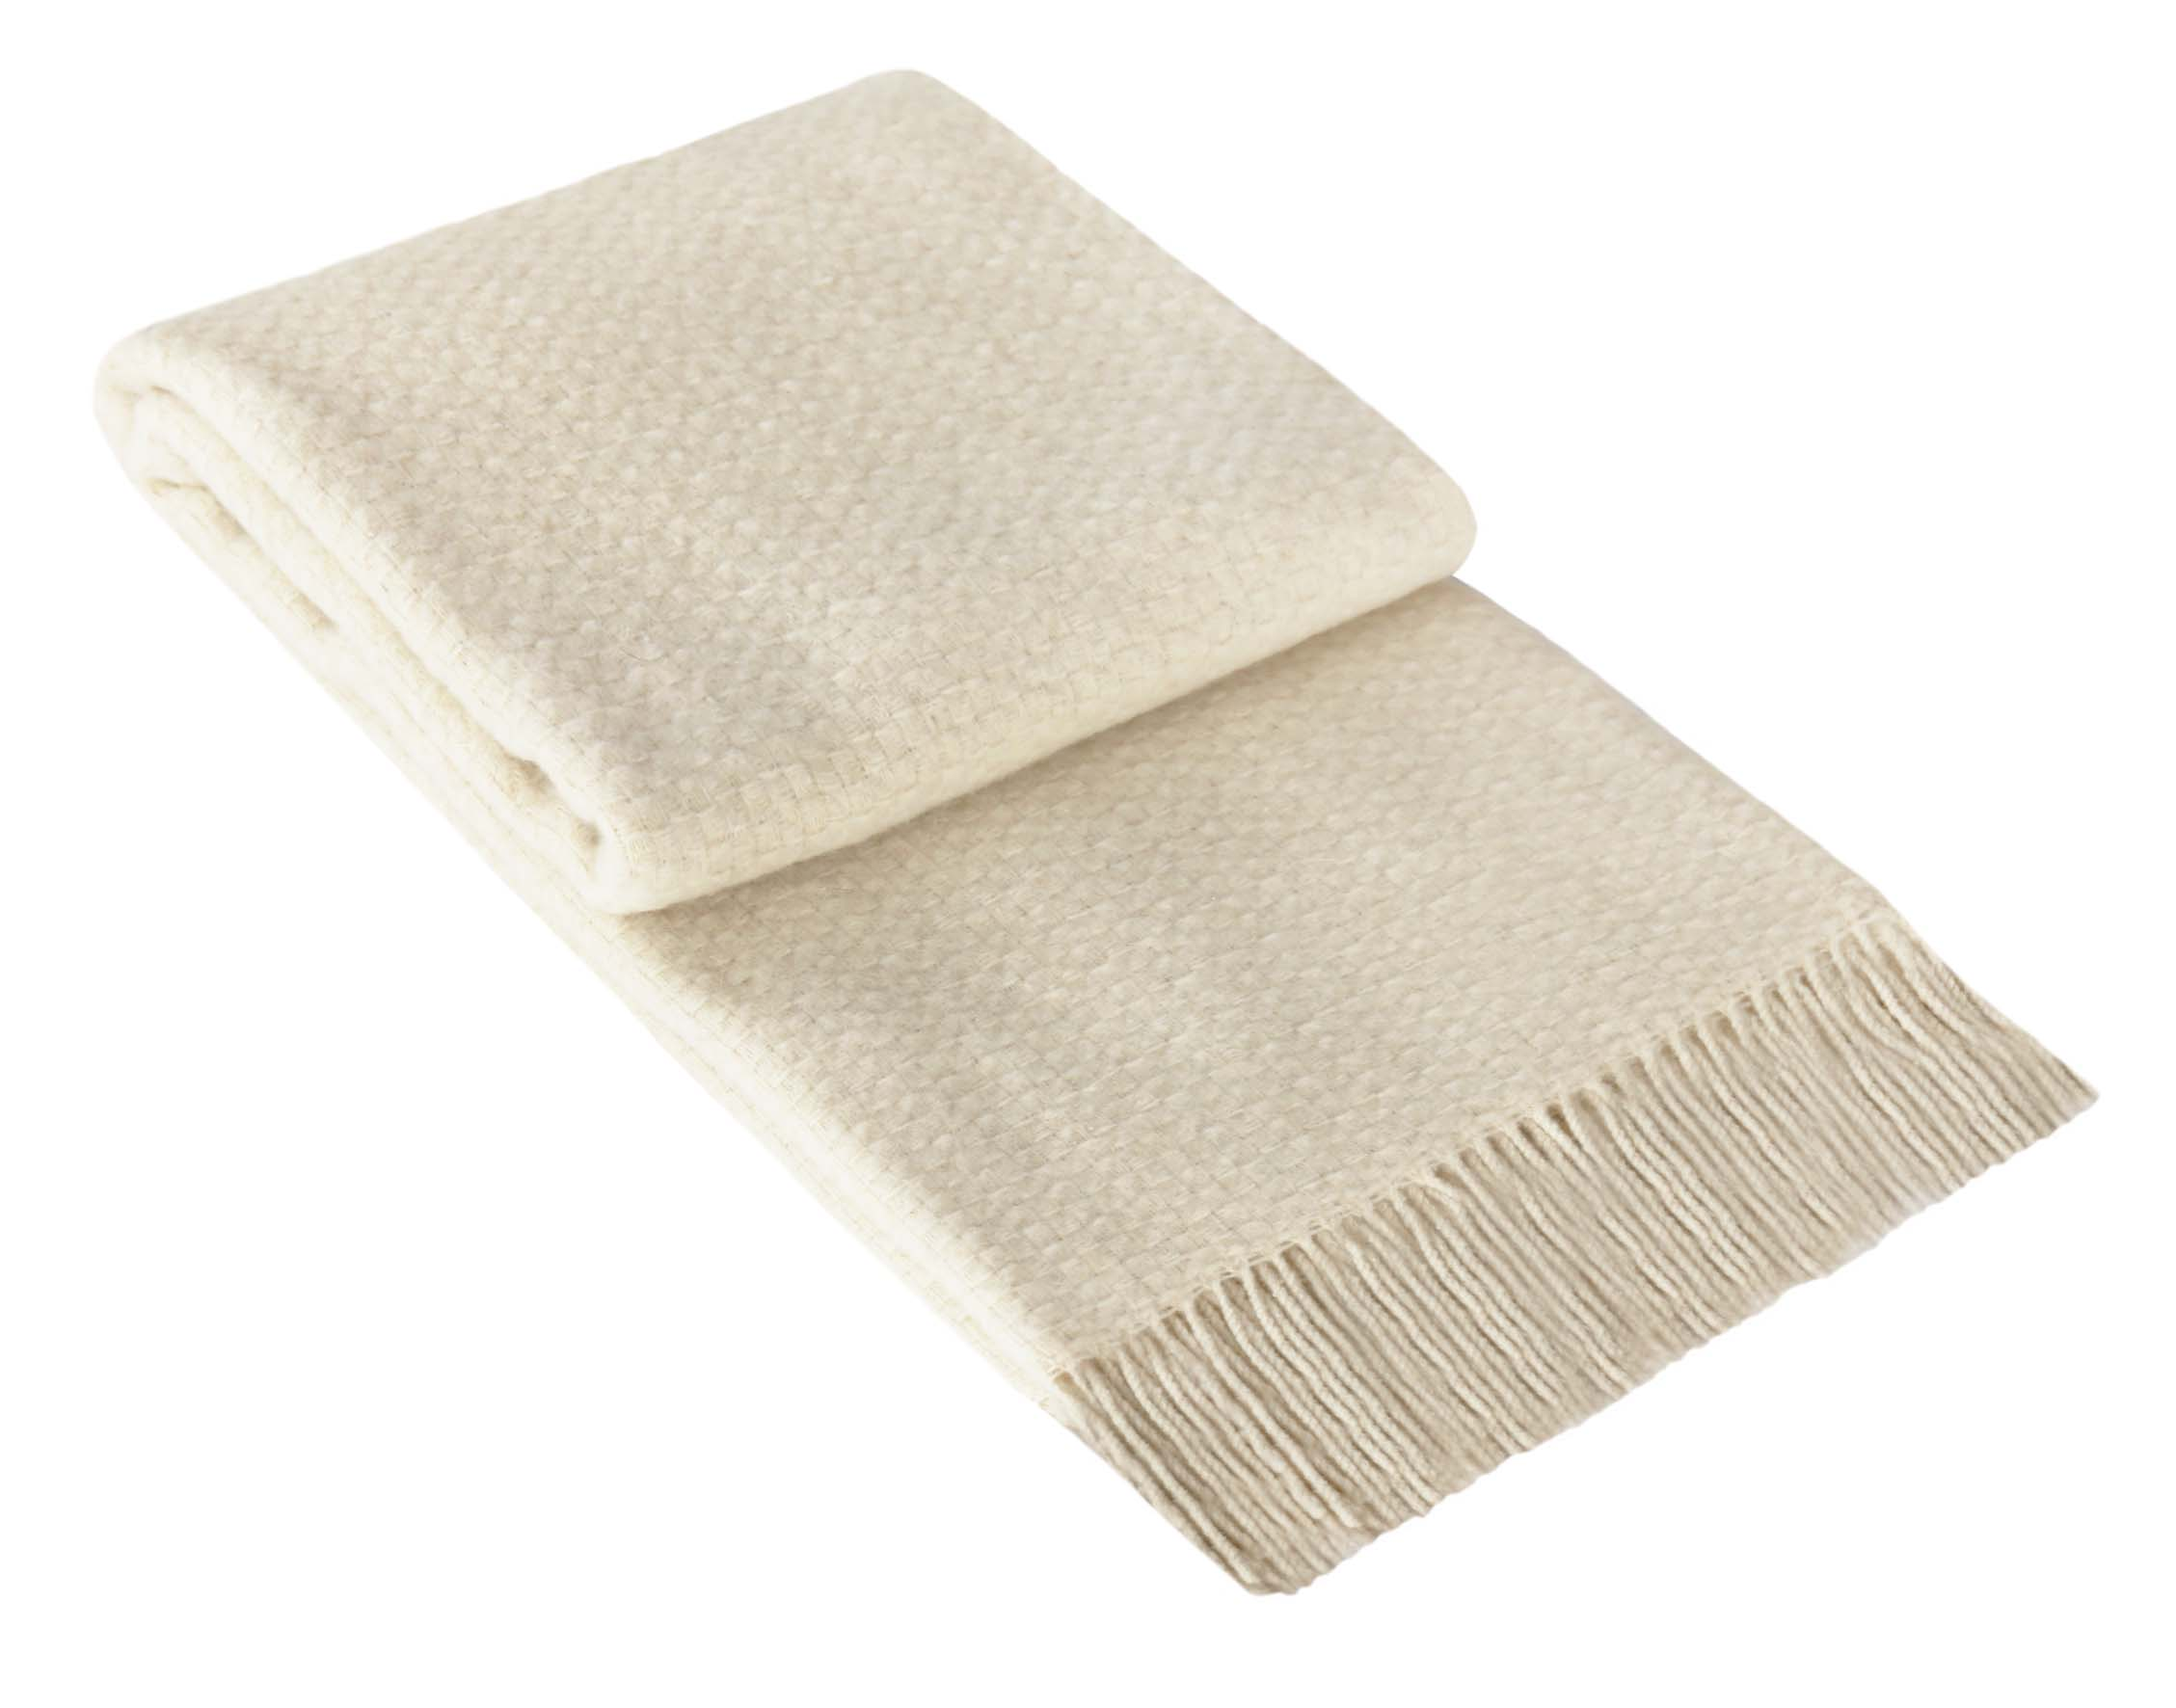 Winter White European Wool Blend Throw Blanket (4615385677908)